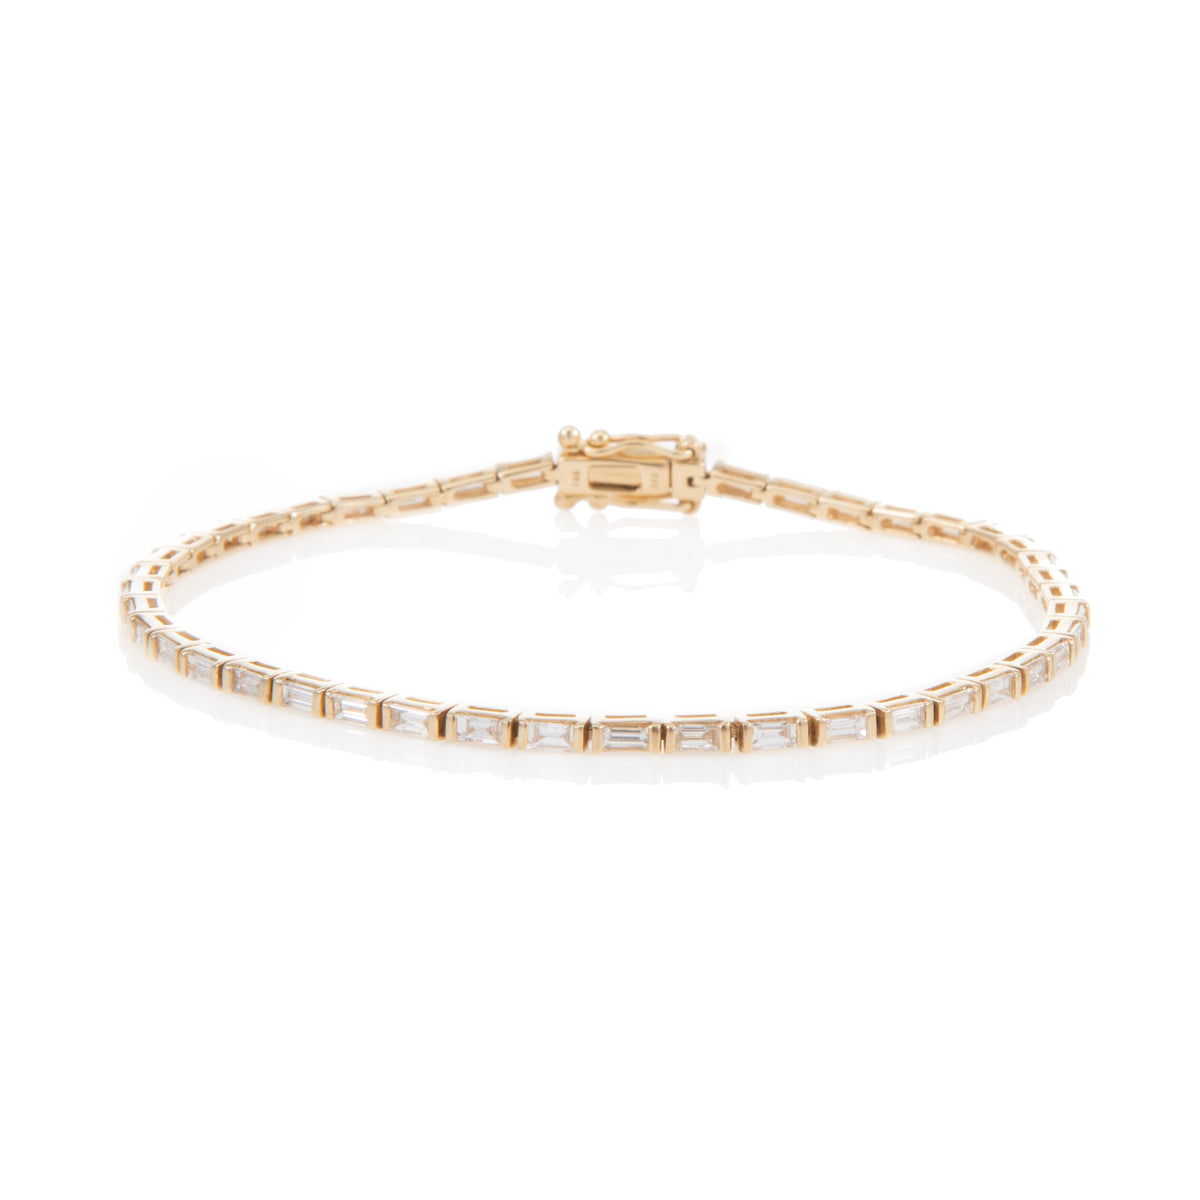 Petite London Baguette Tennis Bracelet